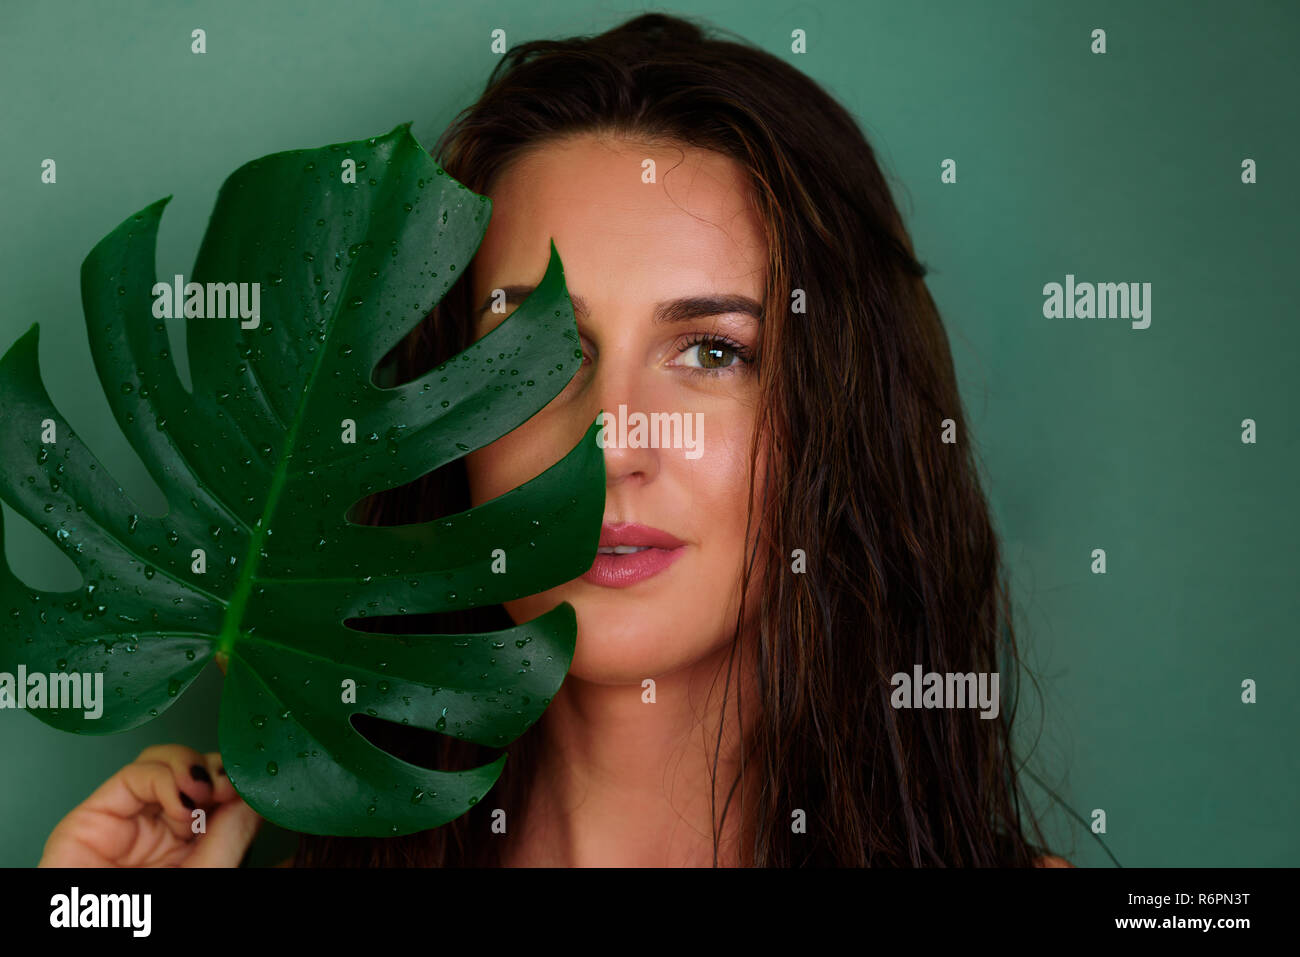 Young Girl With Wet Hair Natural Make Up Holding Tropical Monstera Leaf On Green Background Banner Copy Space Skin Care Pure Beauty Body Treatme Stock Photo Alamy